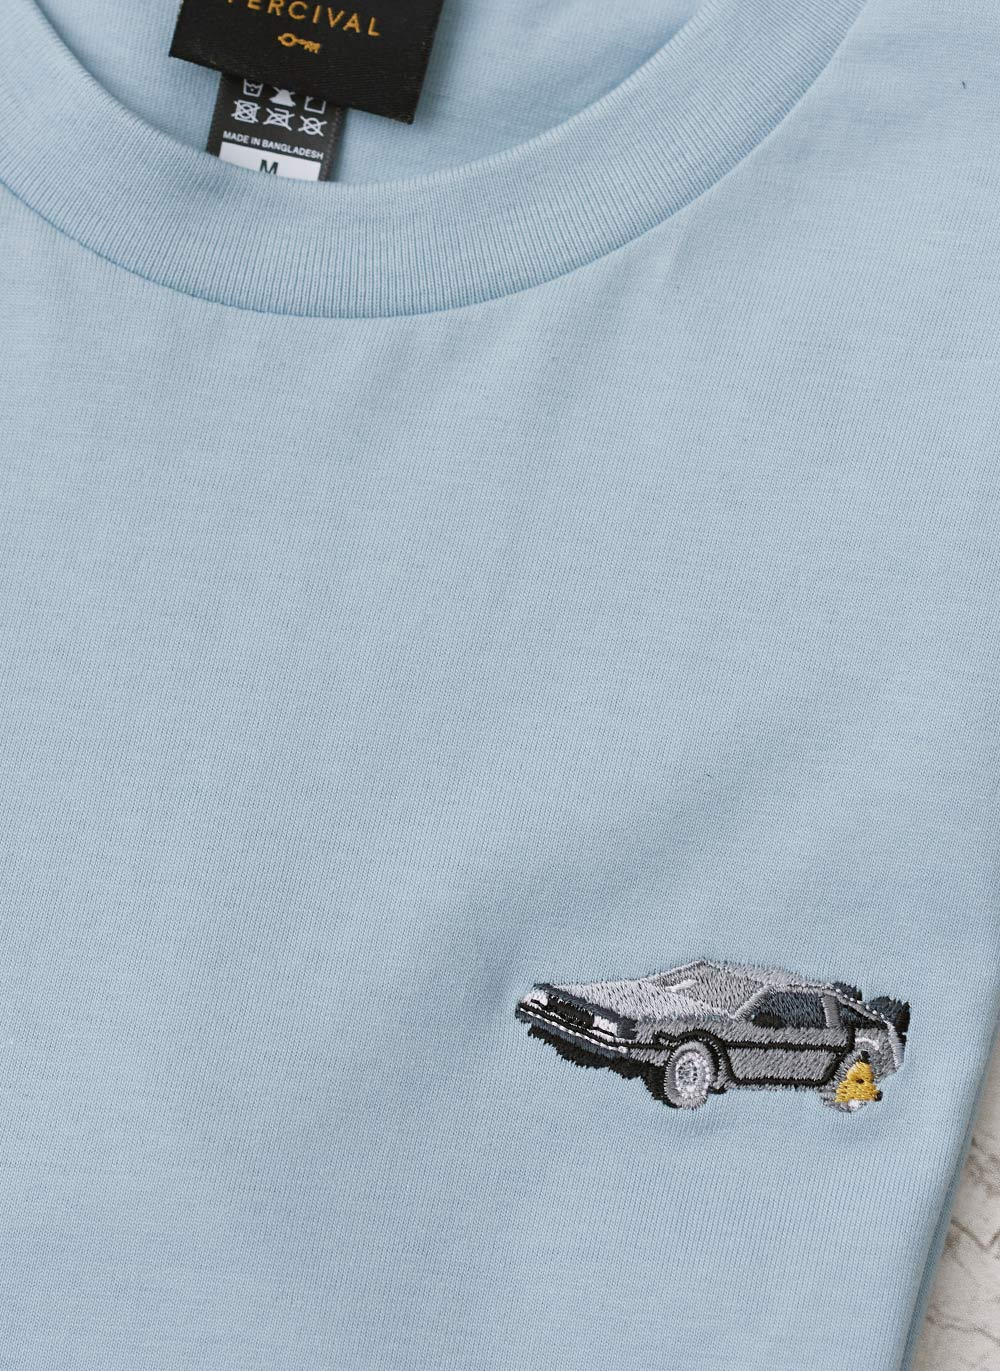 T Shirt | Clamped DeLorean | Lt Blue